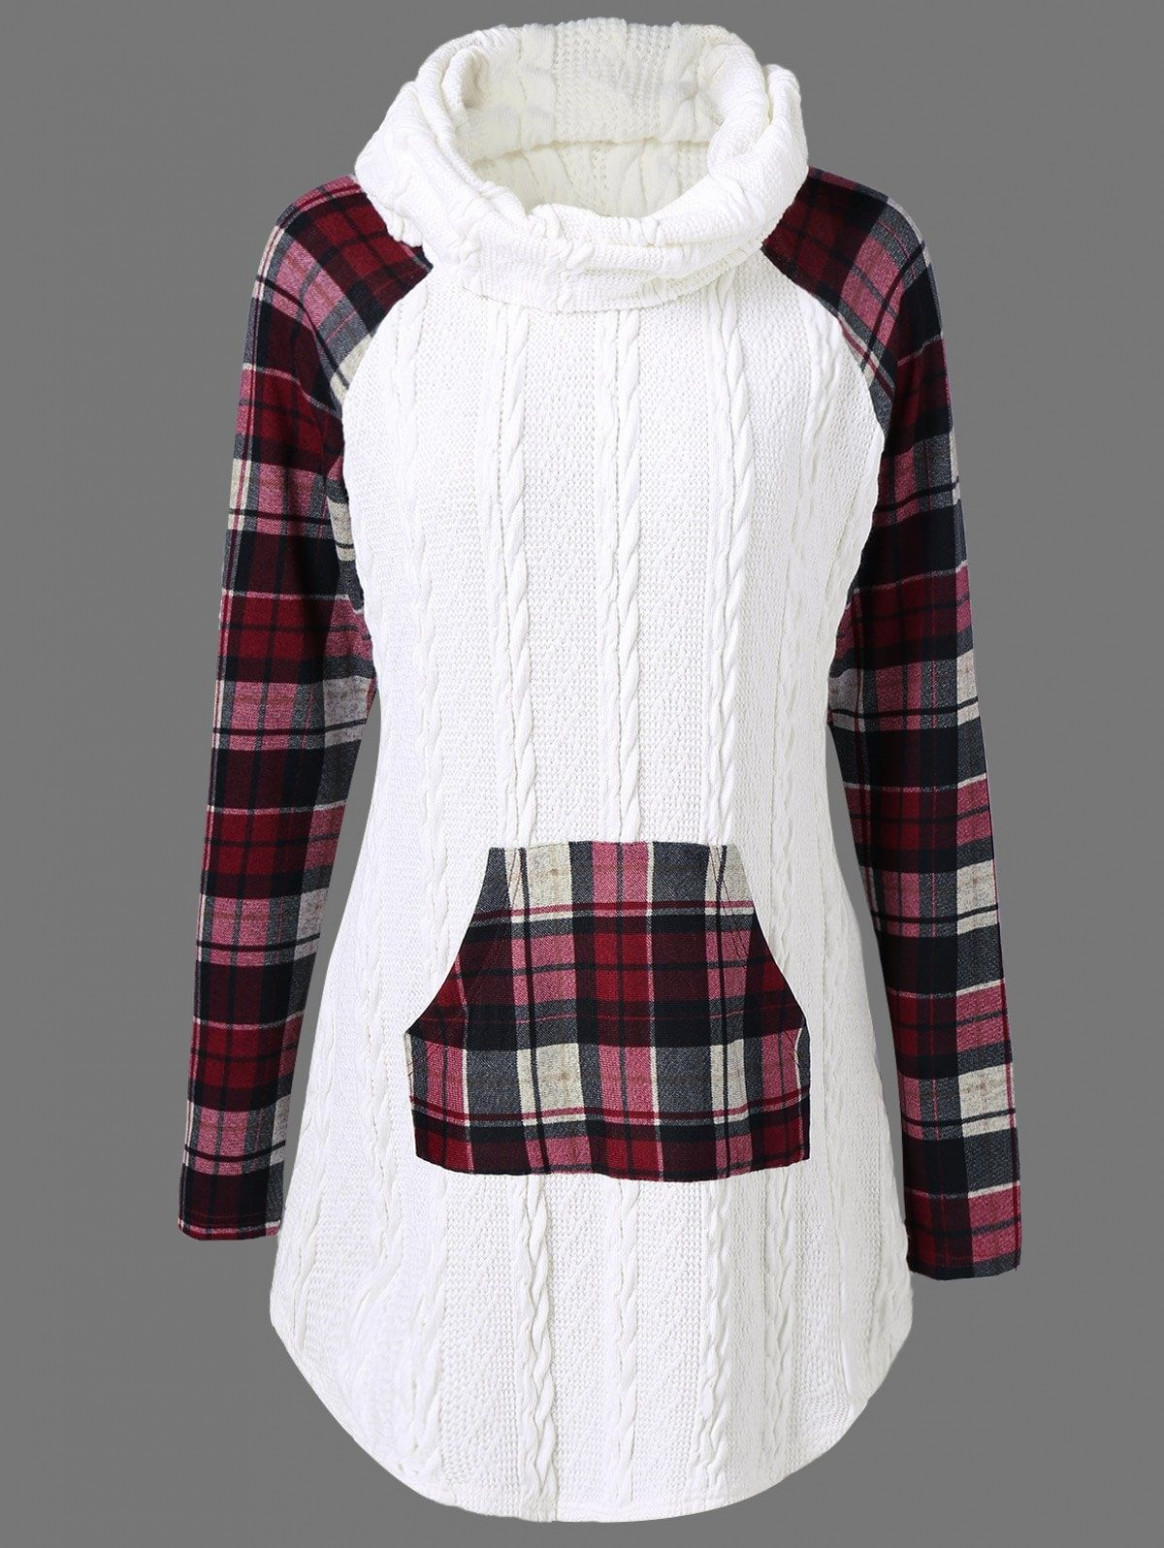 competitive white 12xl sweaters & cardigans online, mobile gamiss online 77 kleidung